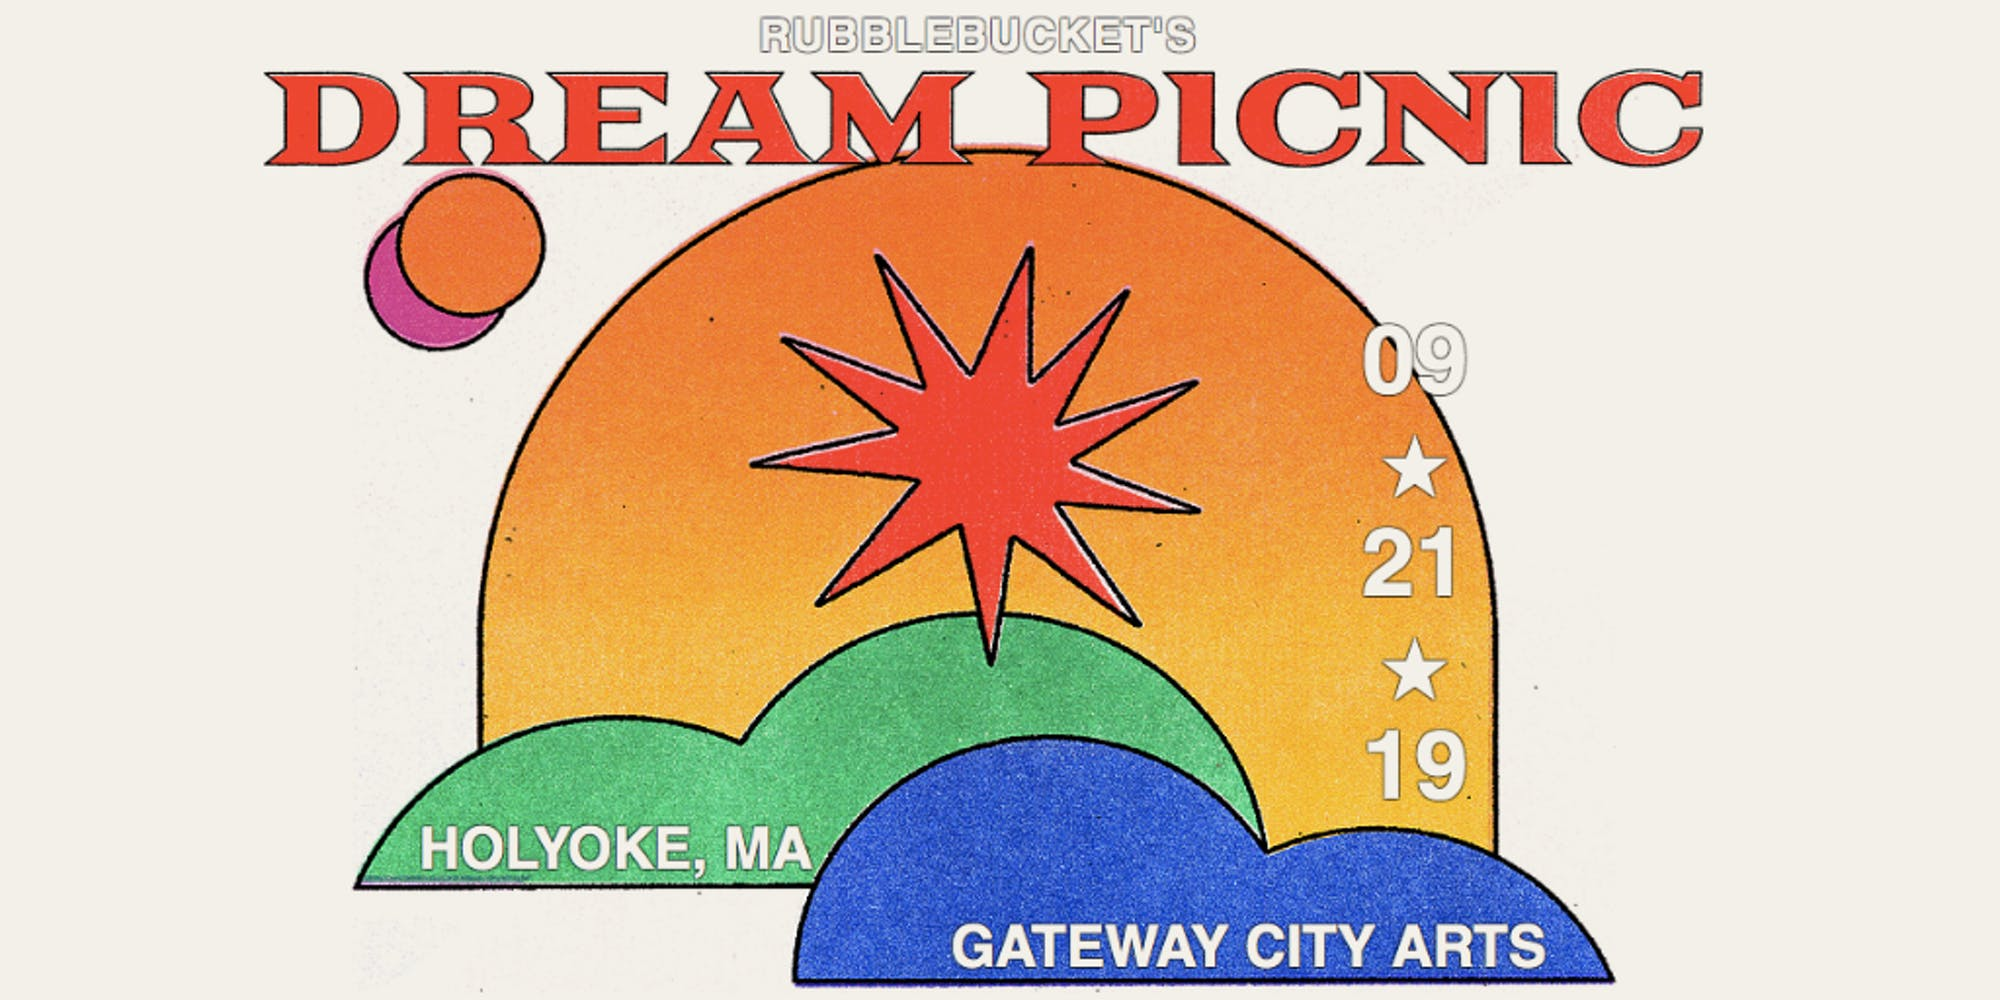 Rubblebucket's 3rd Annual Dream Picnic | Live Music News & Review